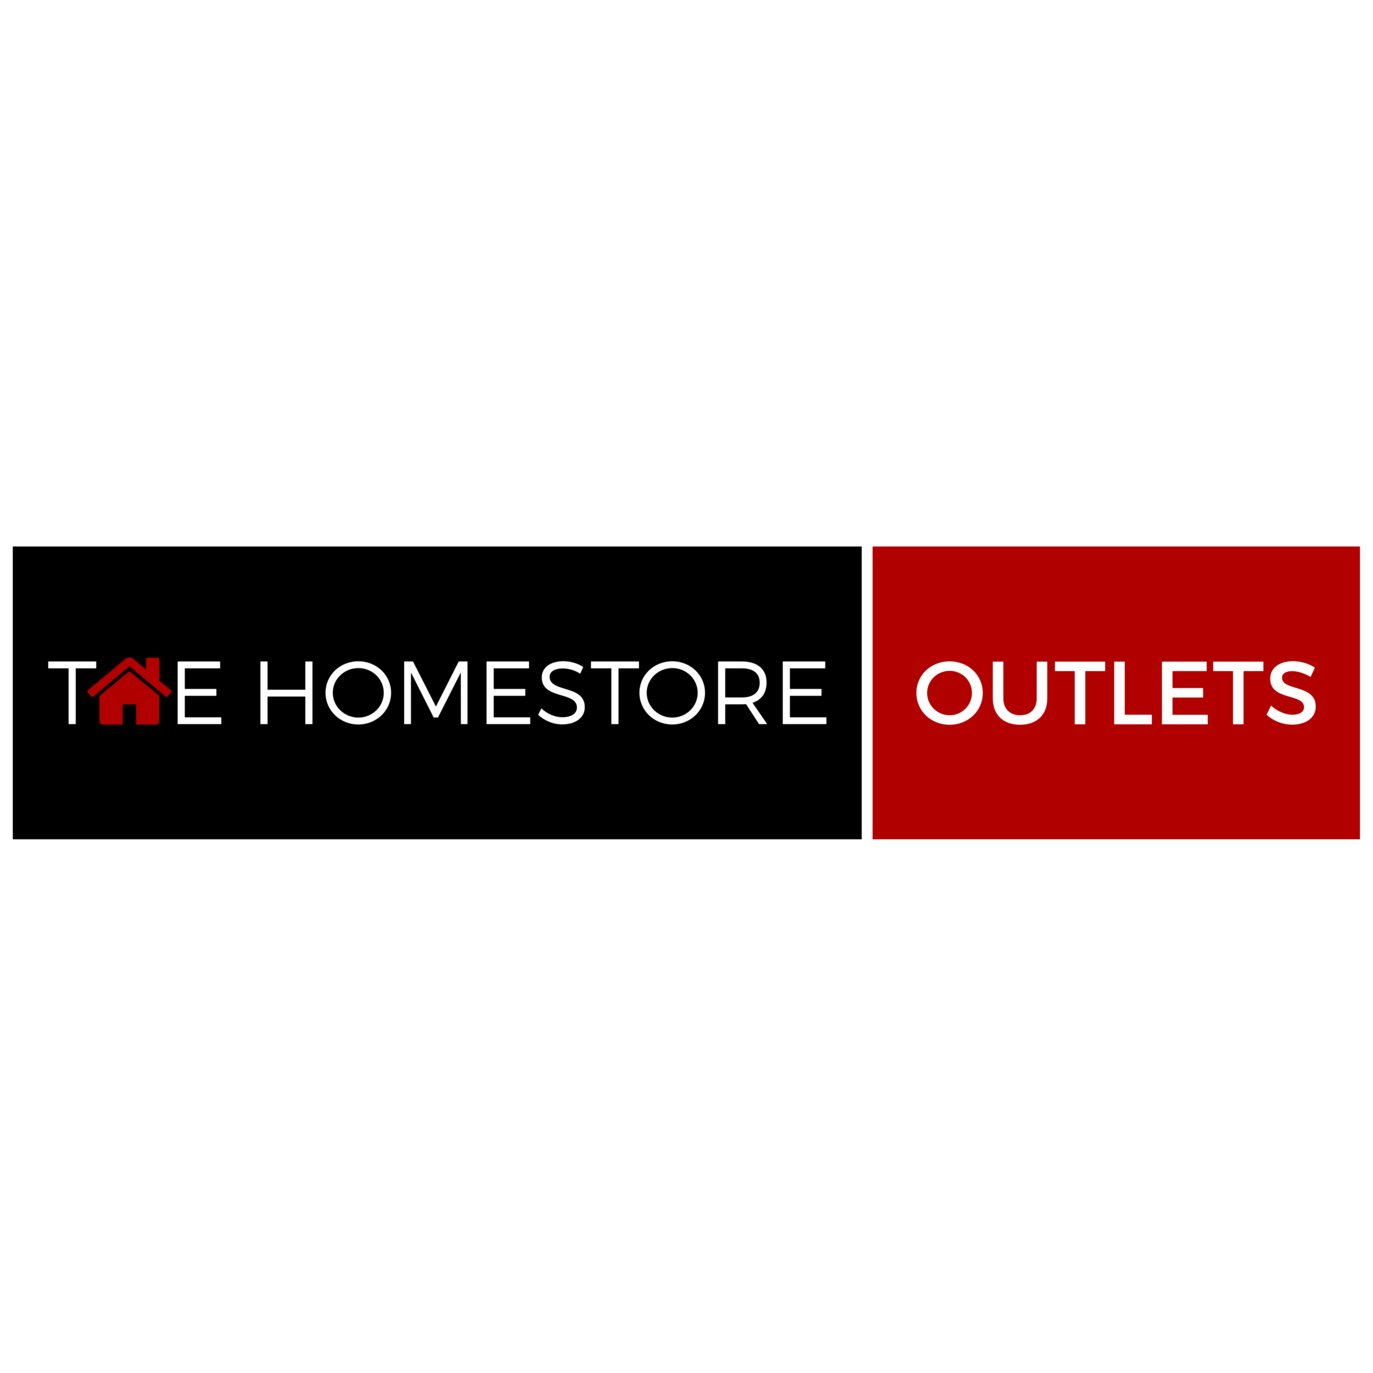 The Homestore Outlets